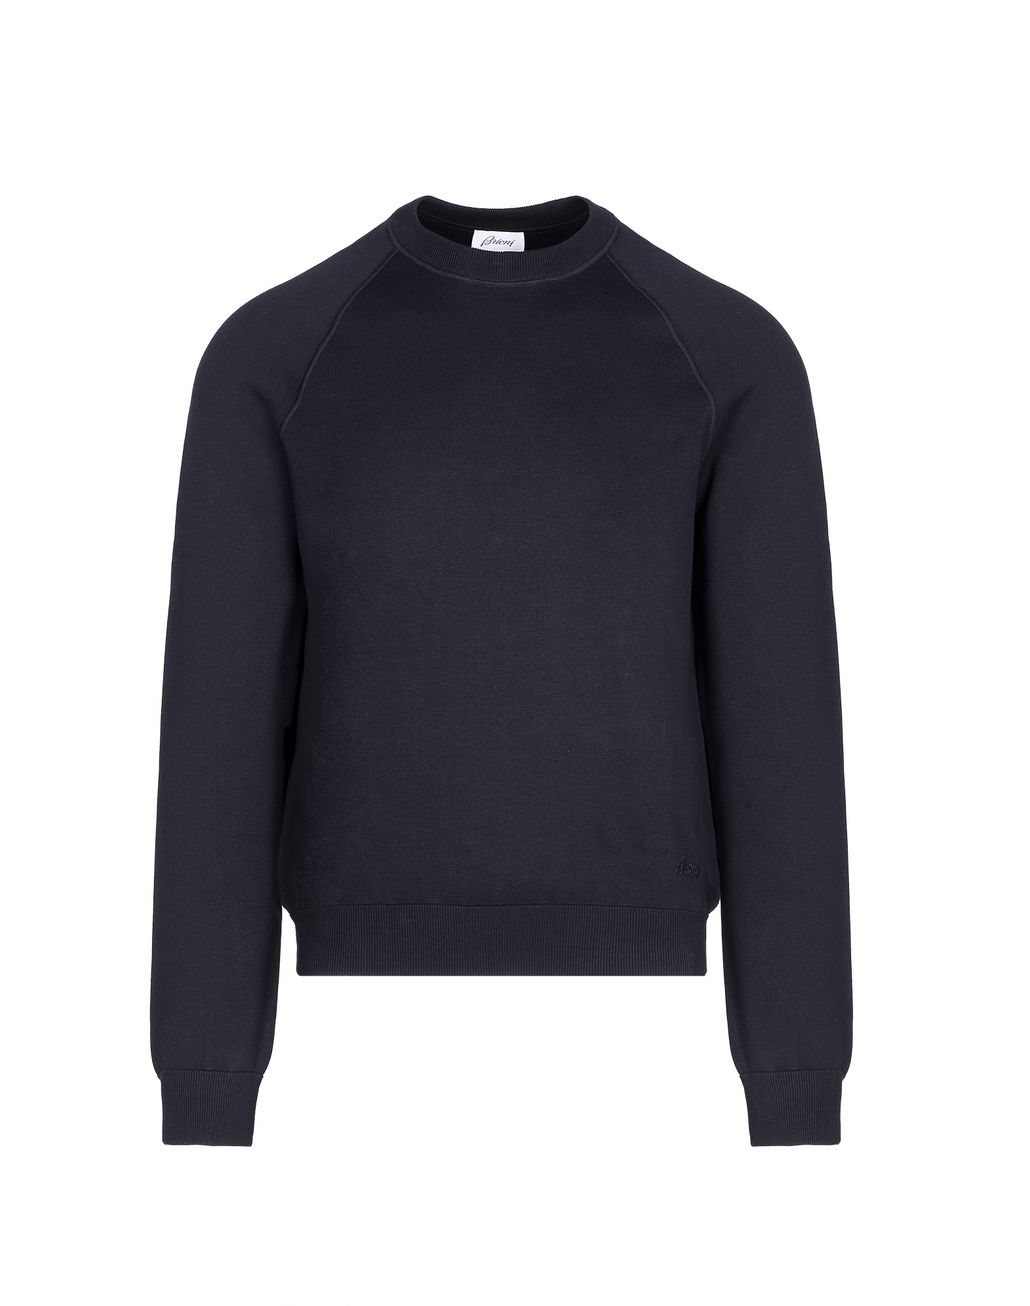 BRIONI Navy Blue Crew Neck Sweater Knitwear [*** pickupInStoreShippingNotGuaranteed_info ***] f